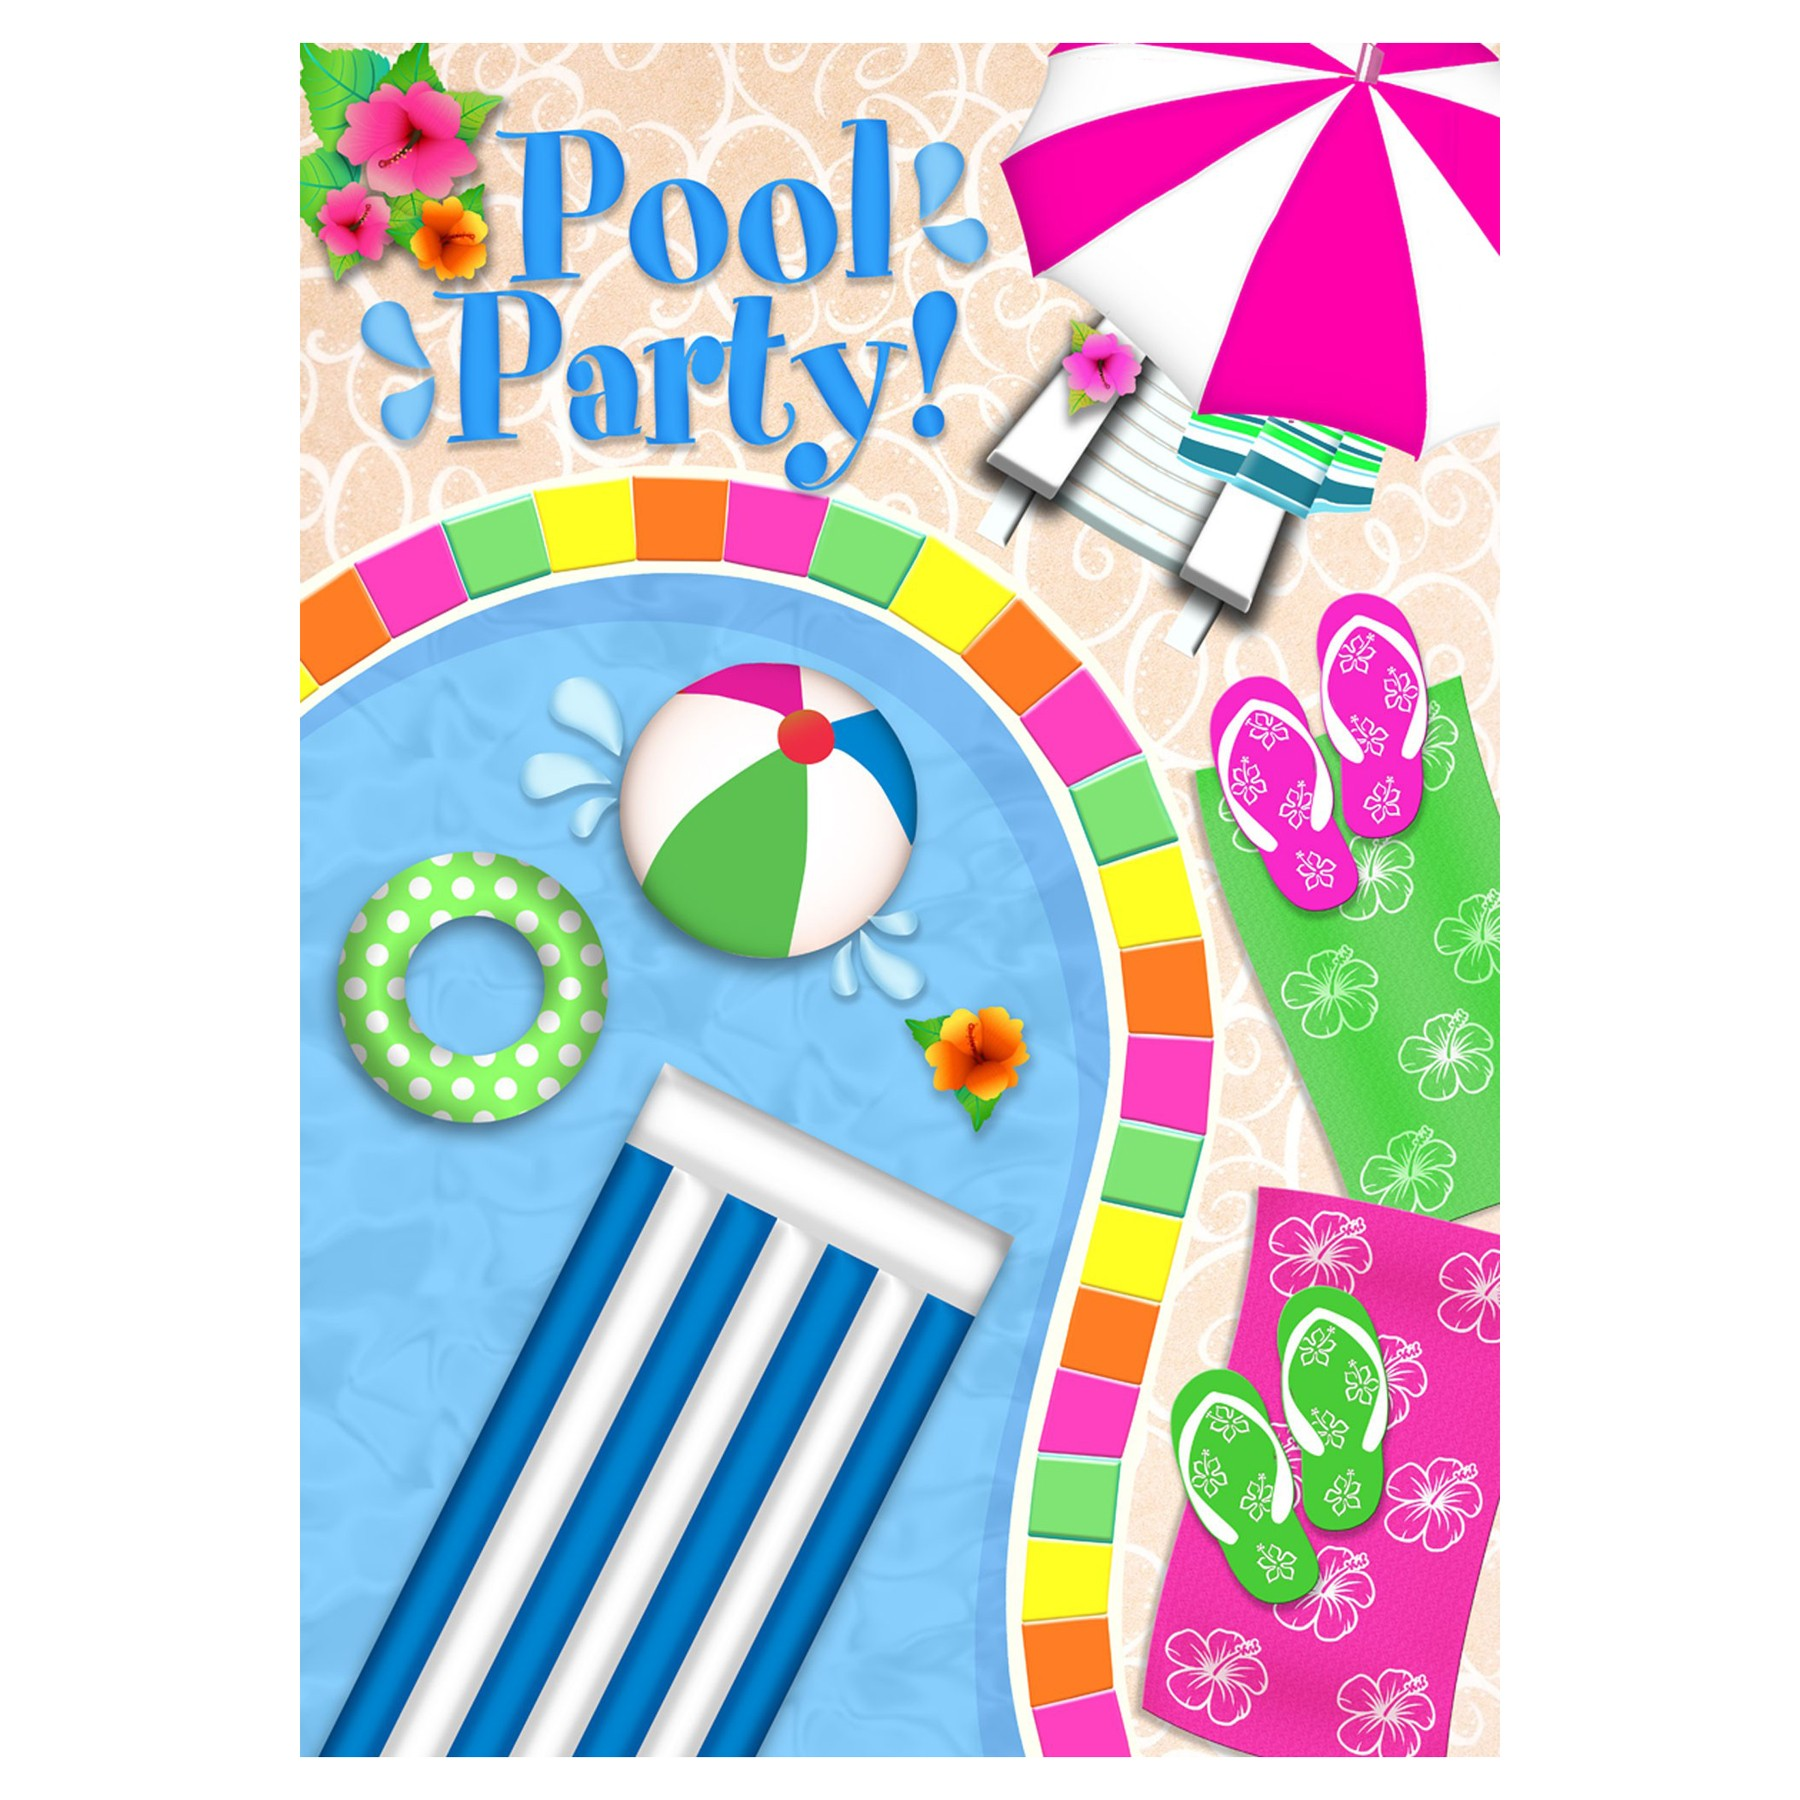 1800x1800 Pool Party Swimming Party Clipart Free Images